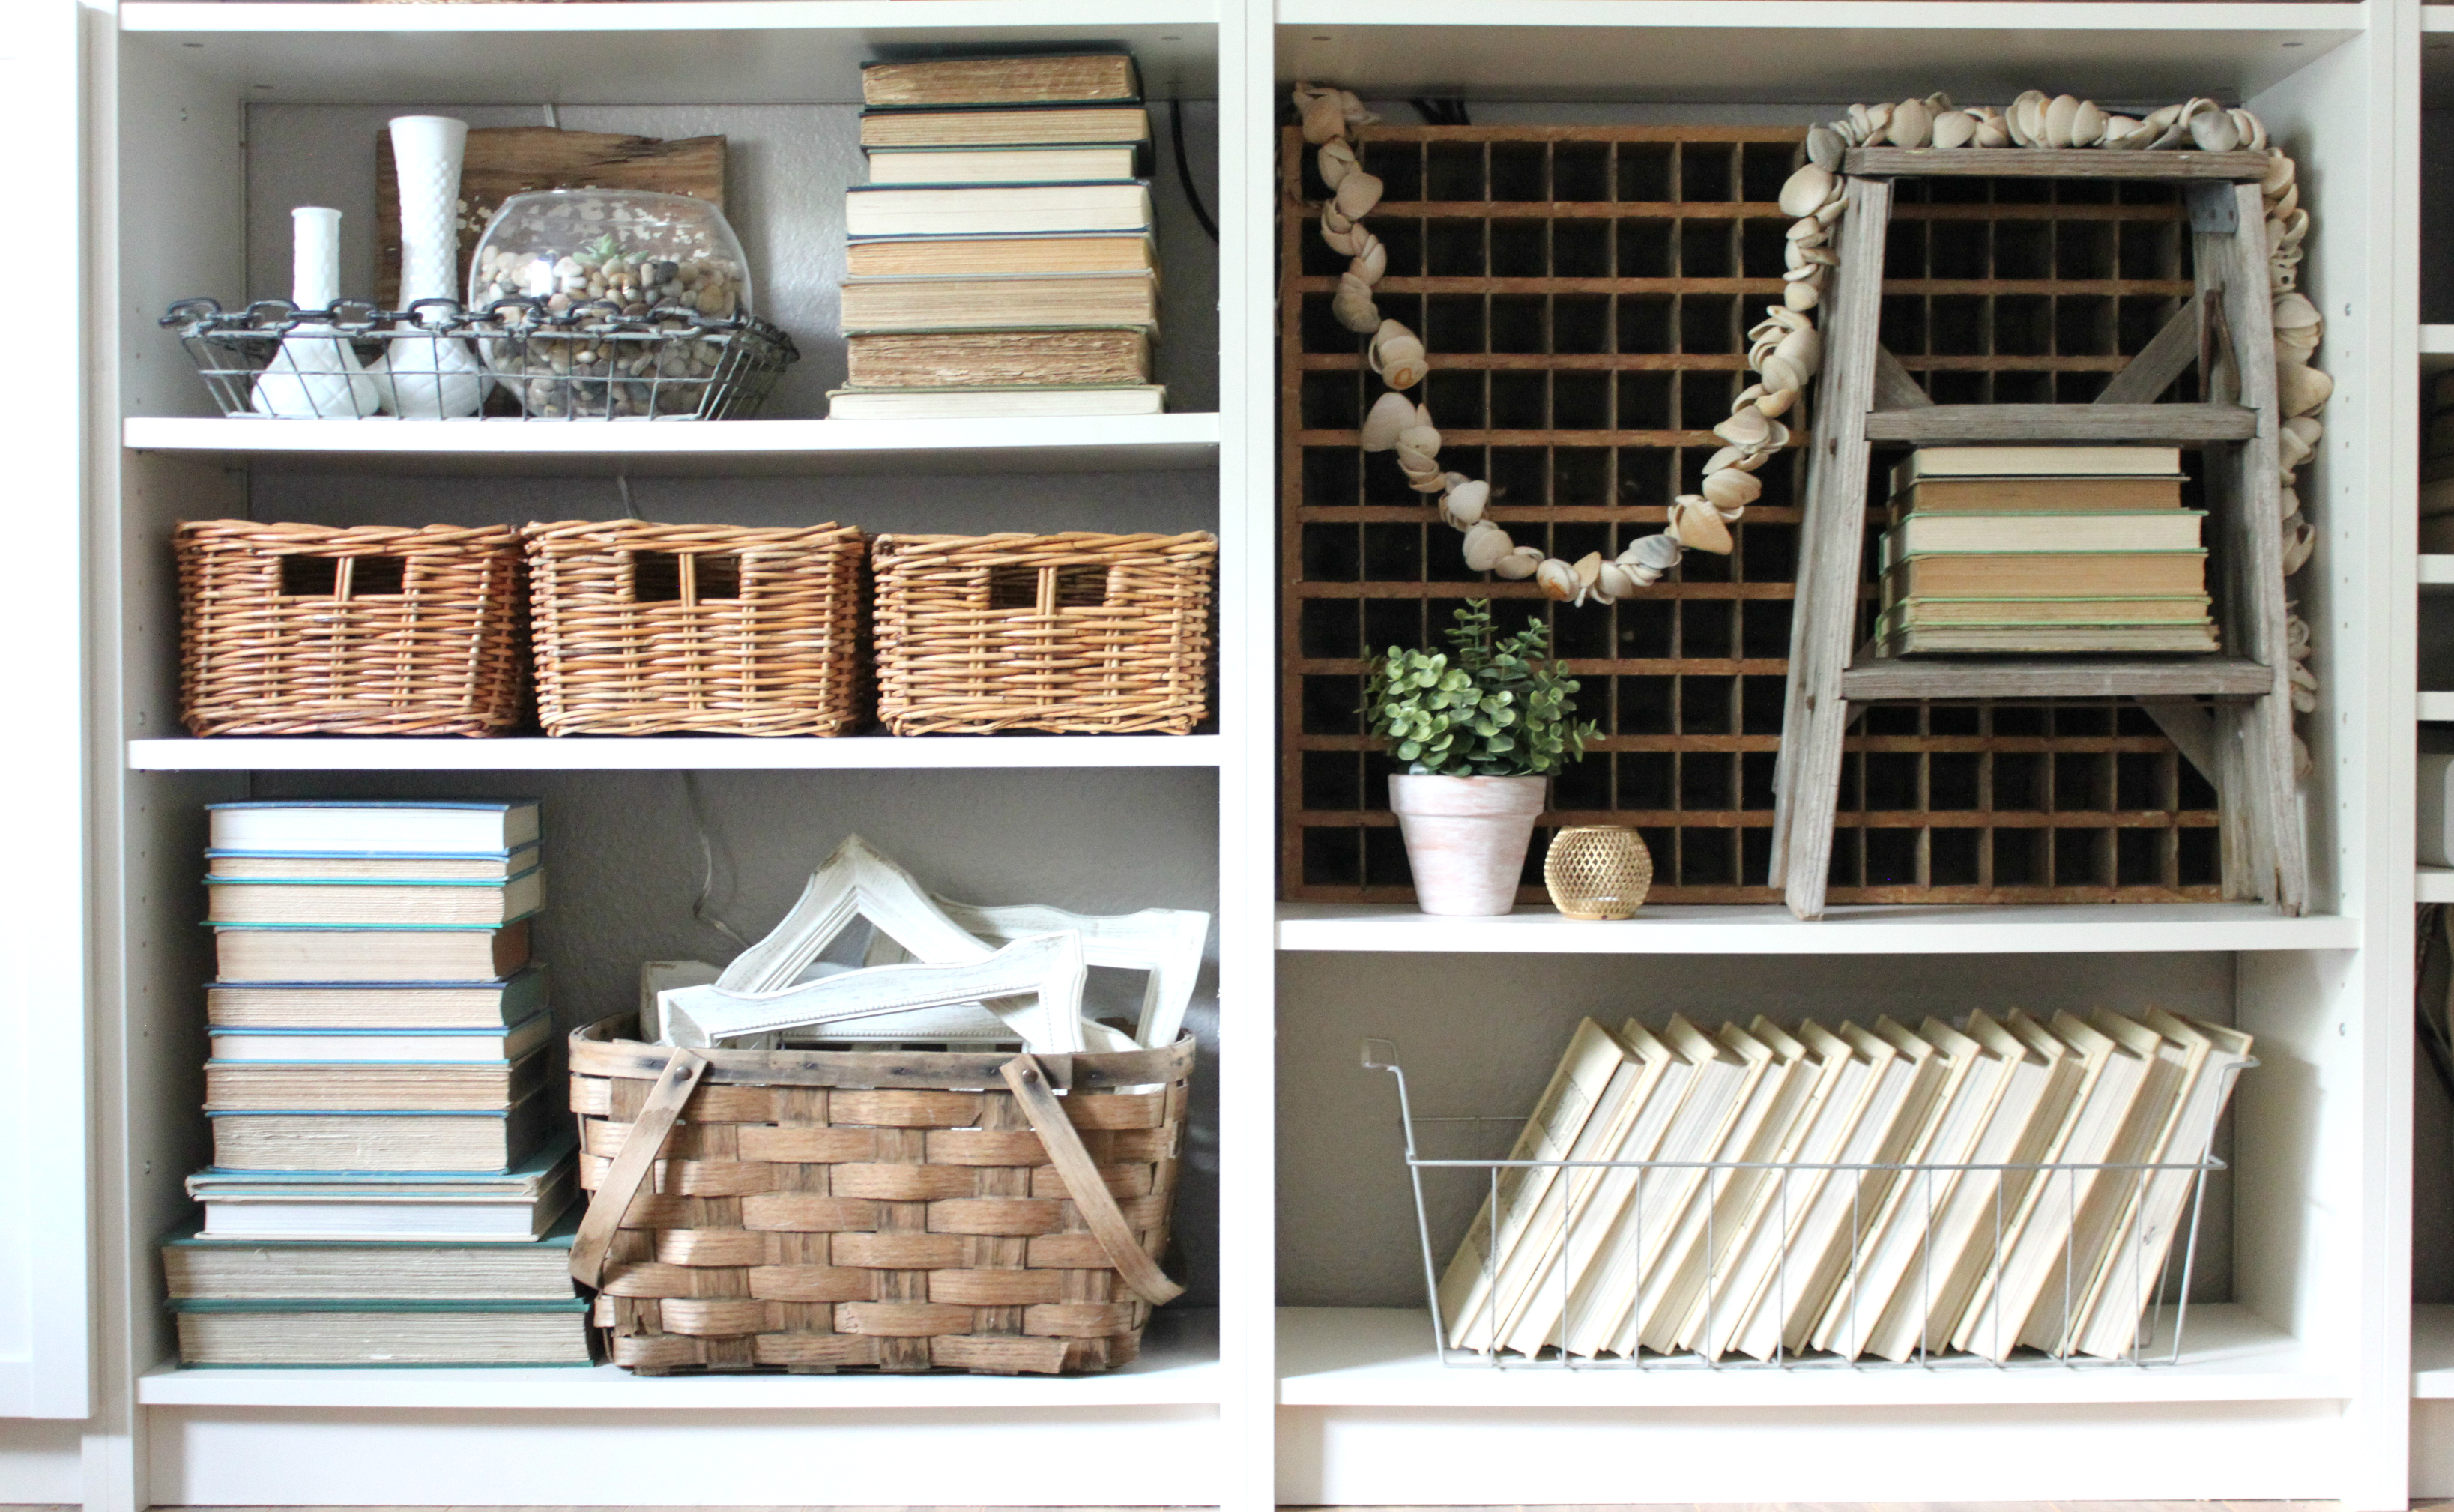 #856346 Baskets For Billy Bookcase – Amazing Bookcases with 3275x2018 px of Recommended Bookcases With Baskets 20183275 save image @ avoidforclosure.info